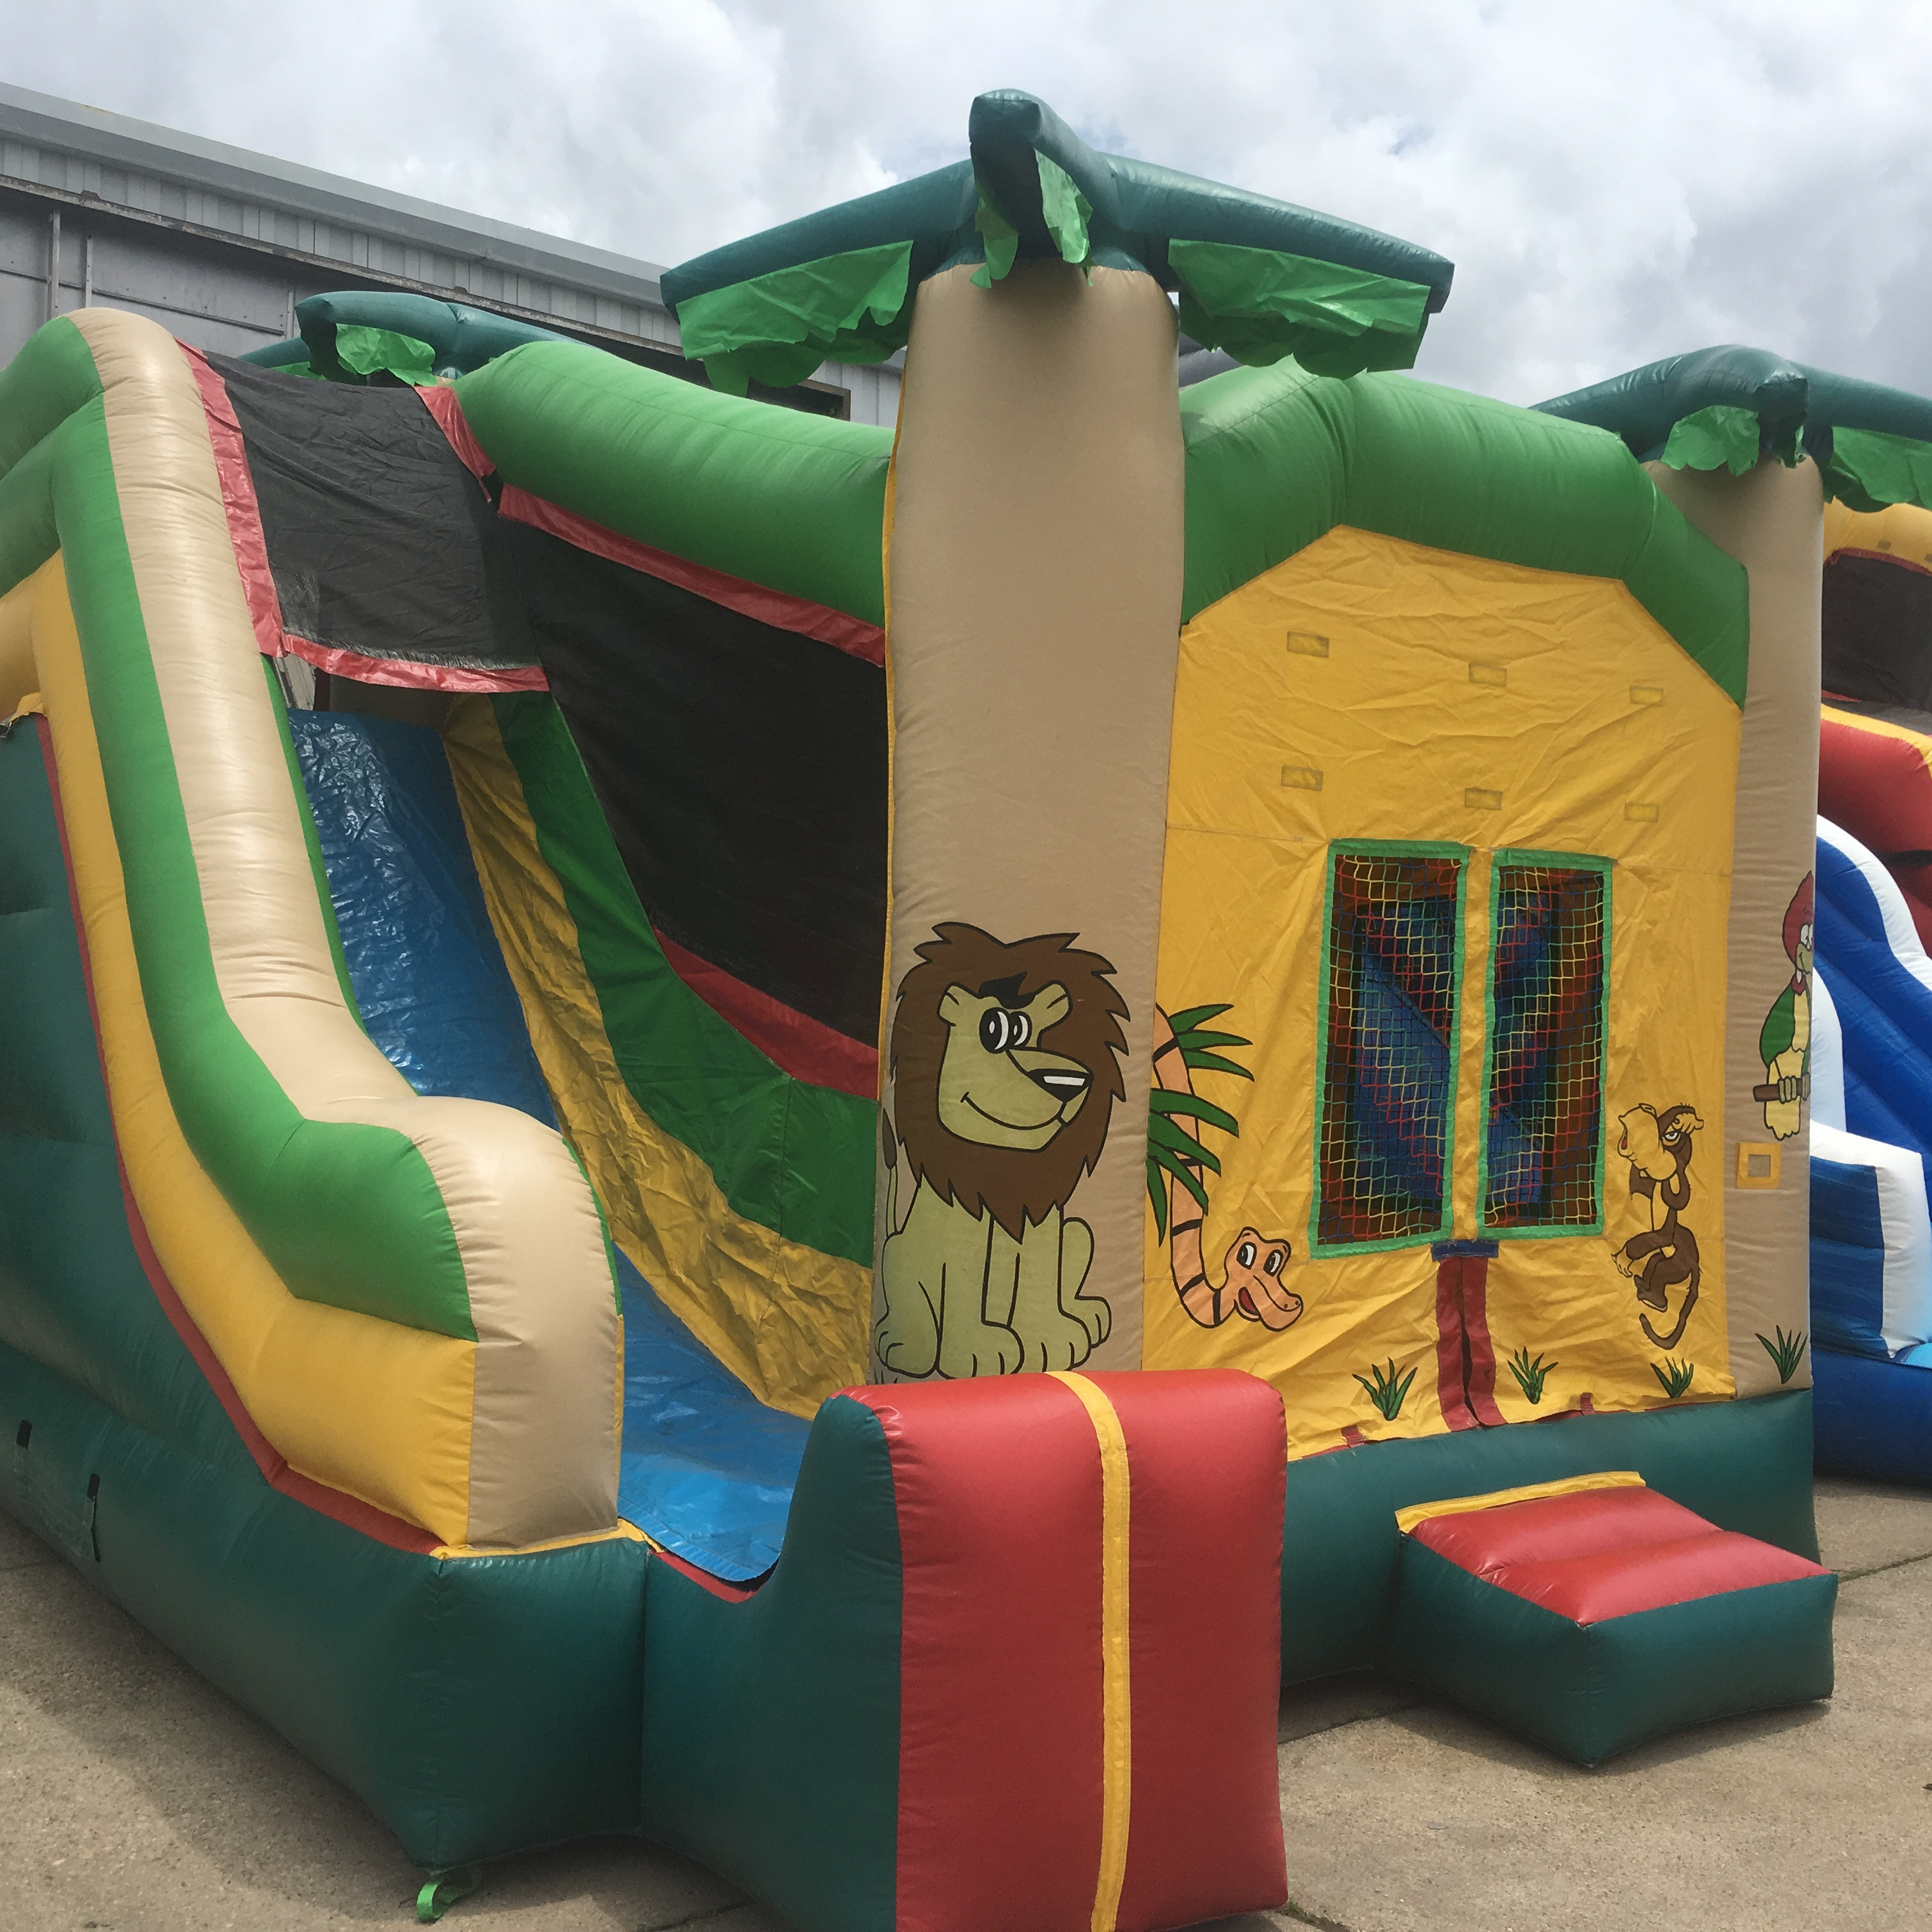 3 in 1 bounce house with slide